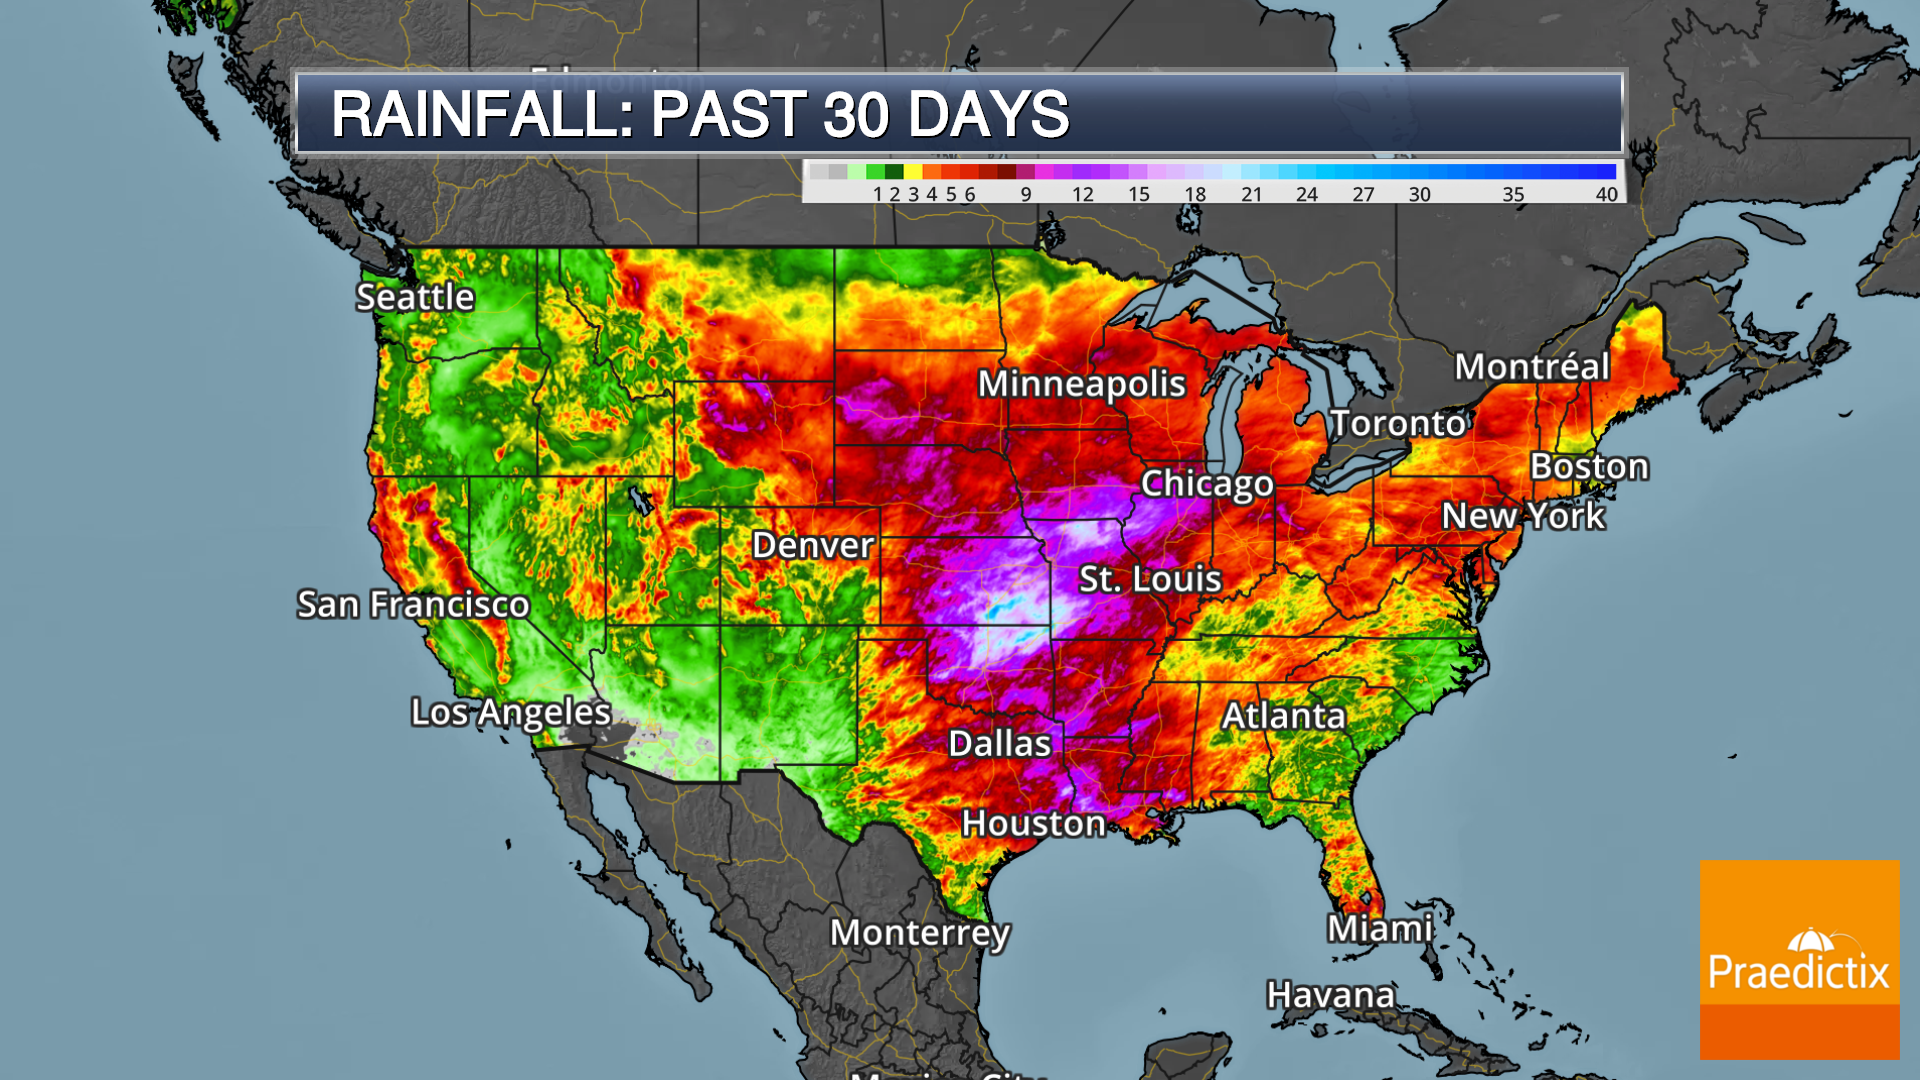 Weather map showing past 30 day rainfall in the United States with legend. AHPS.